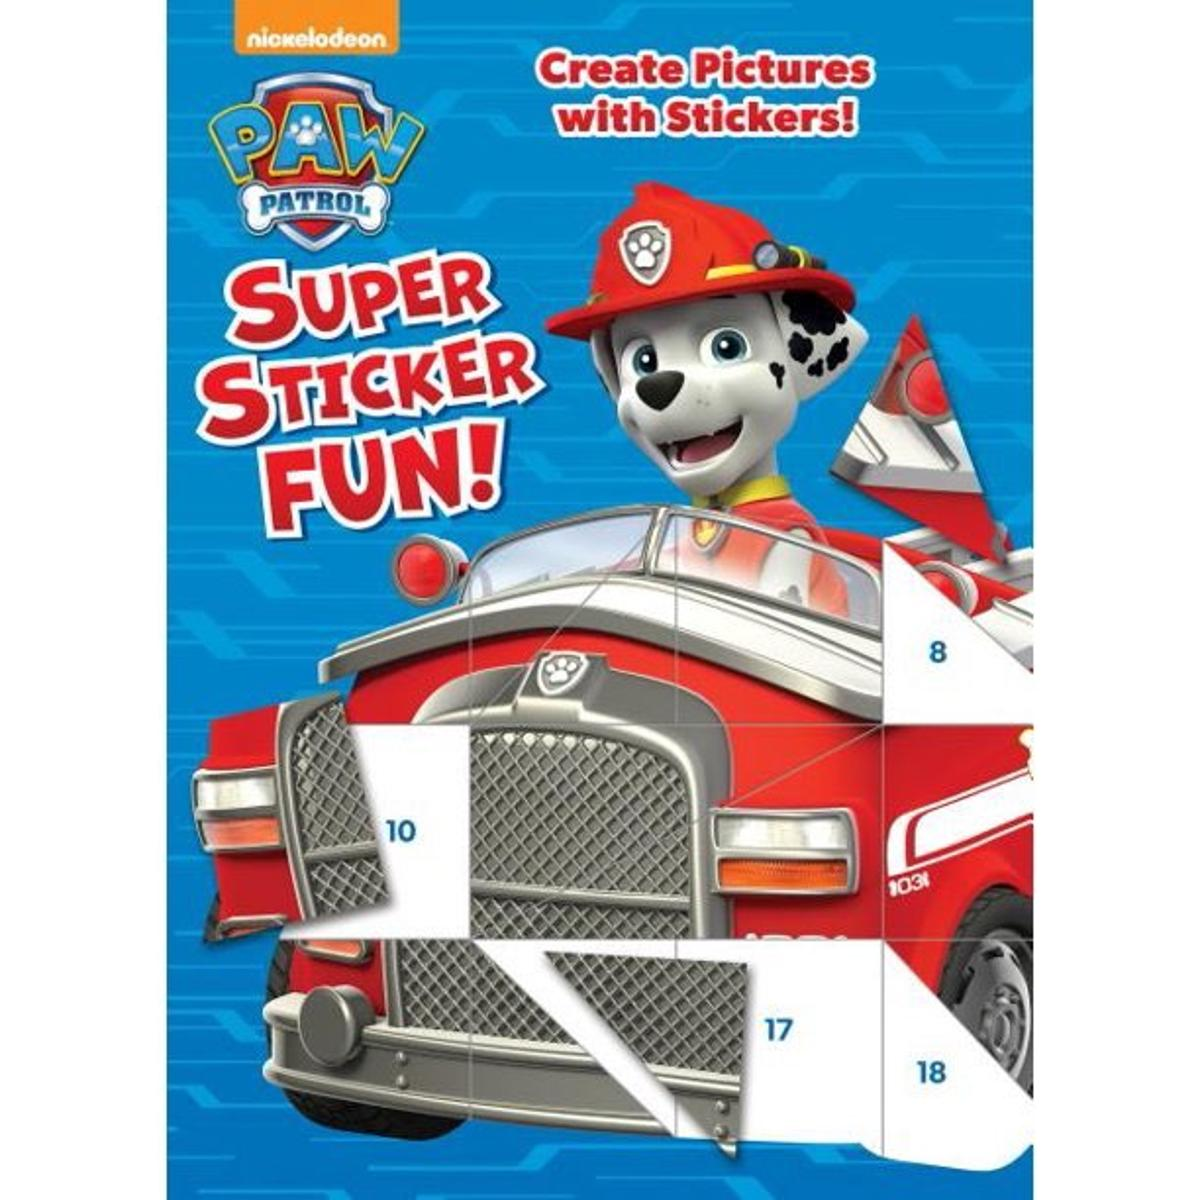 PAW Patrol Super Sticker Fun Activity Book